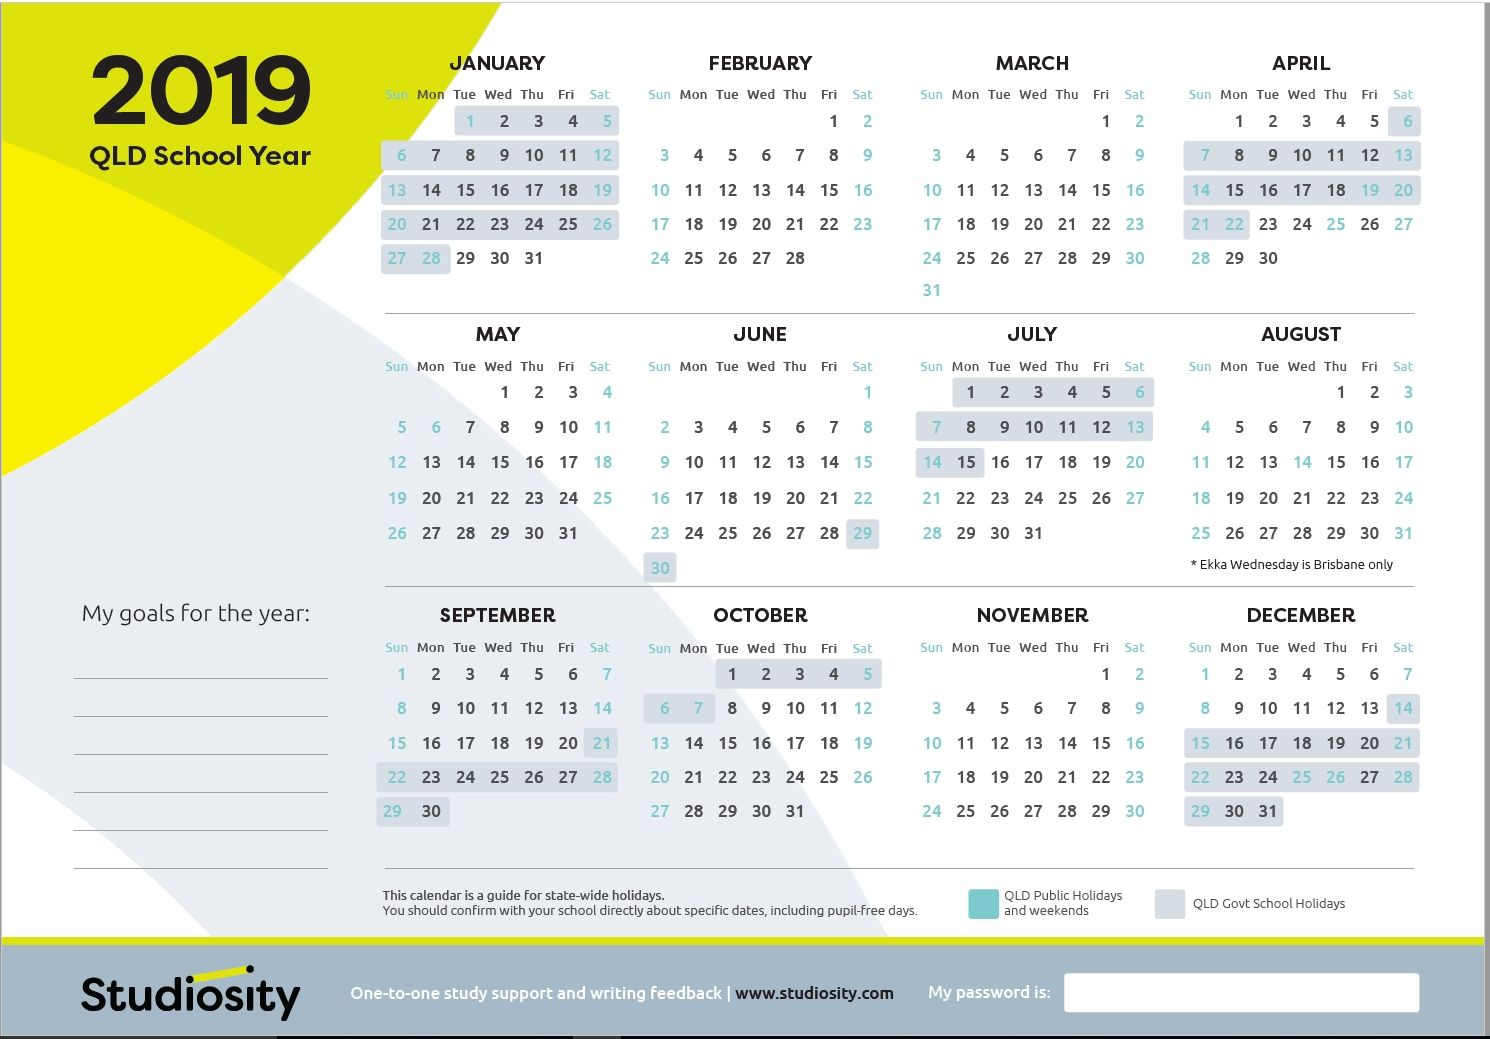 School Terms And Public Holiday Dates For Qld In 2019 Studiosity